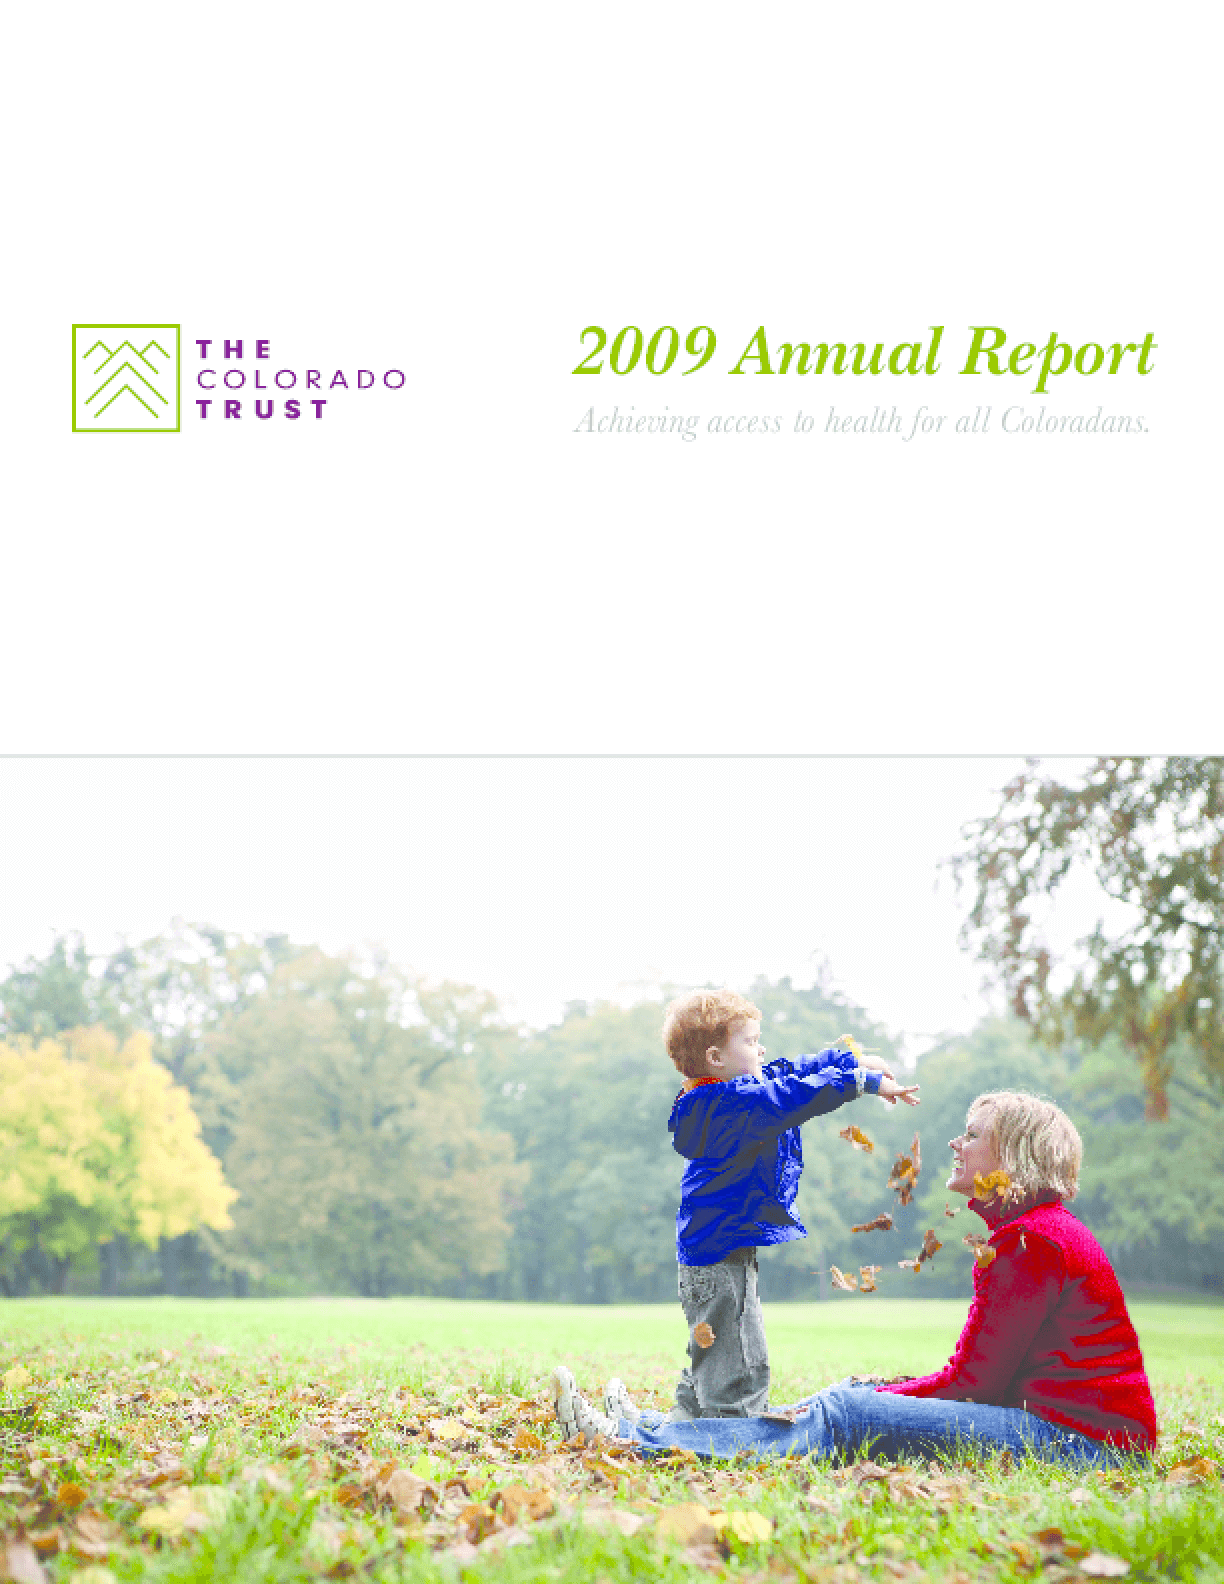 Colorado Trust - 2009 Annual Report